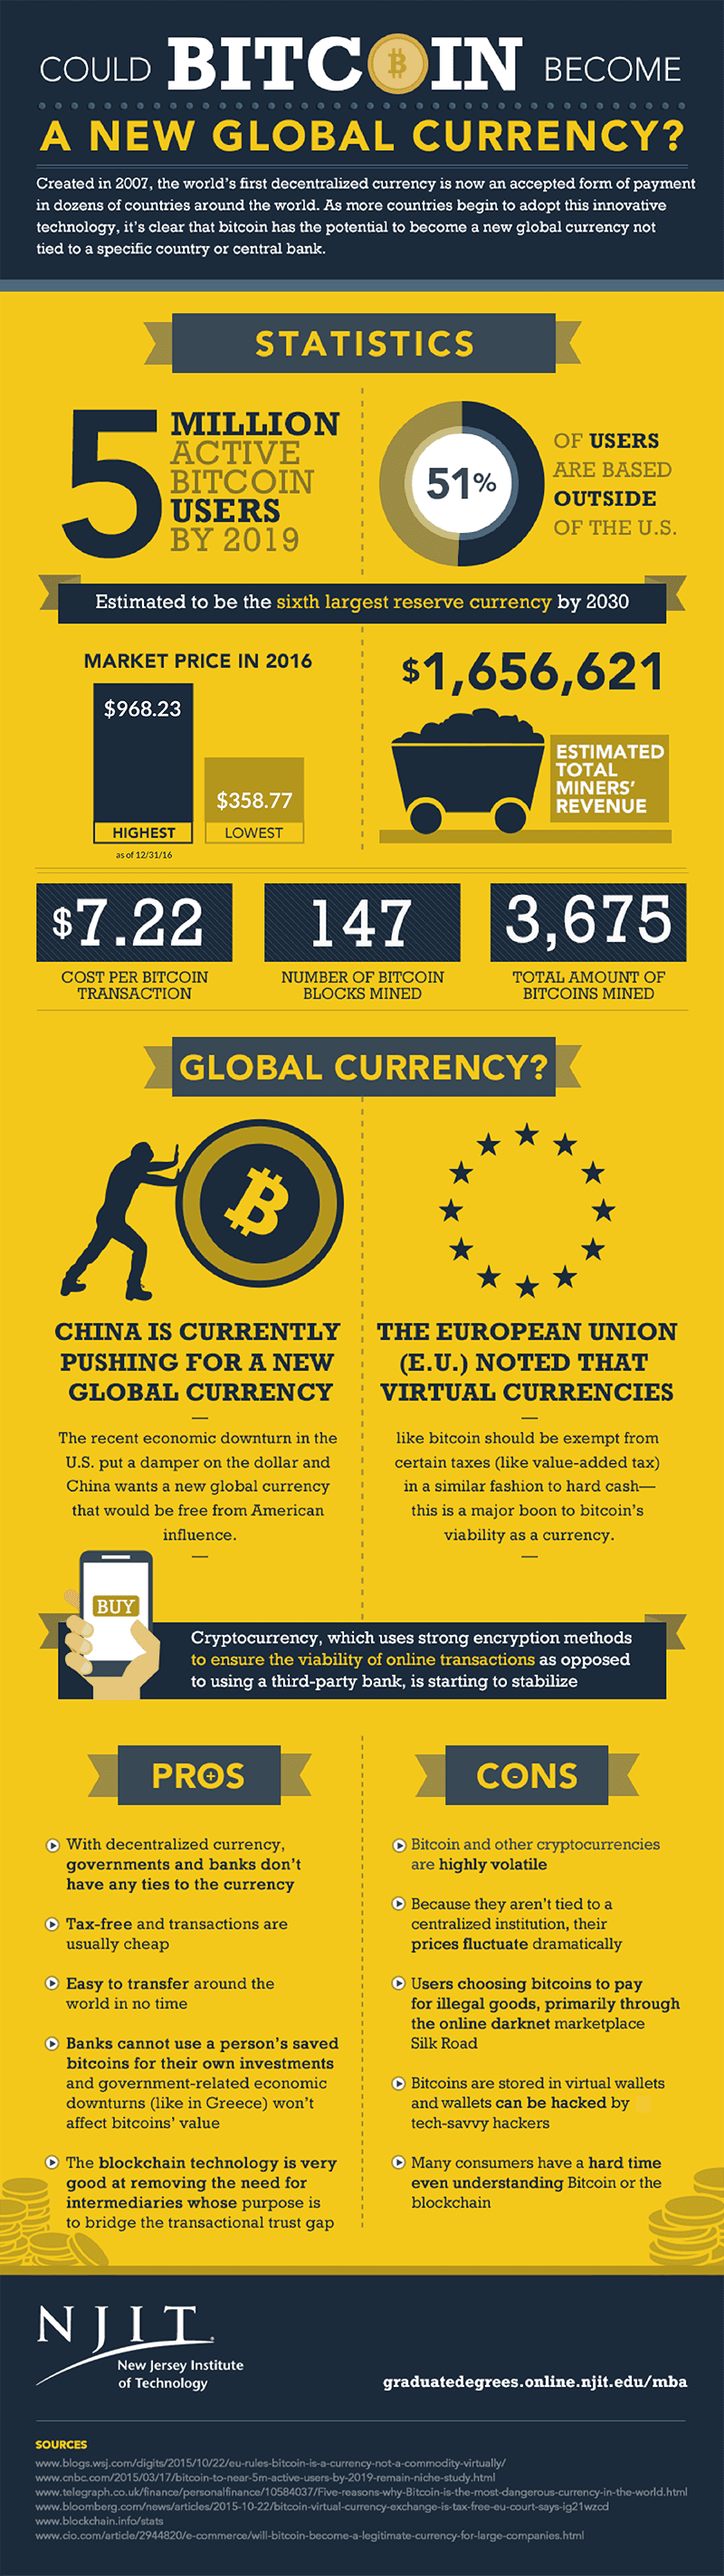 Bitcoin to become a new global currency?